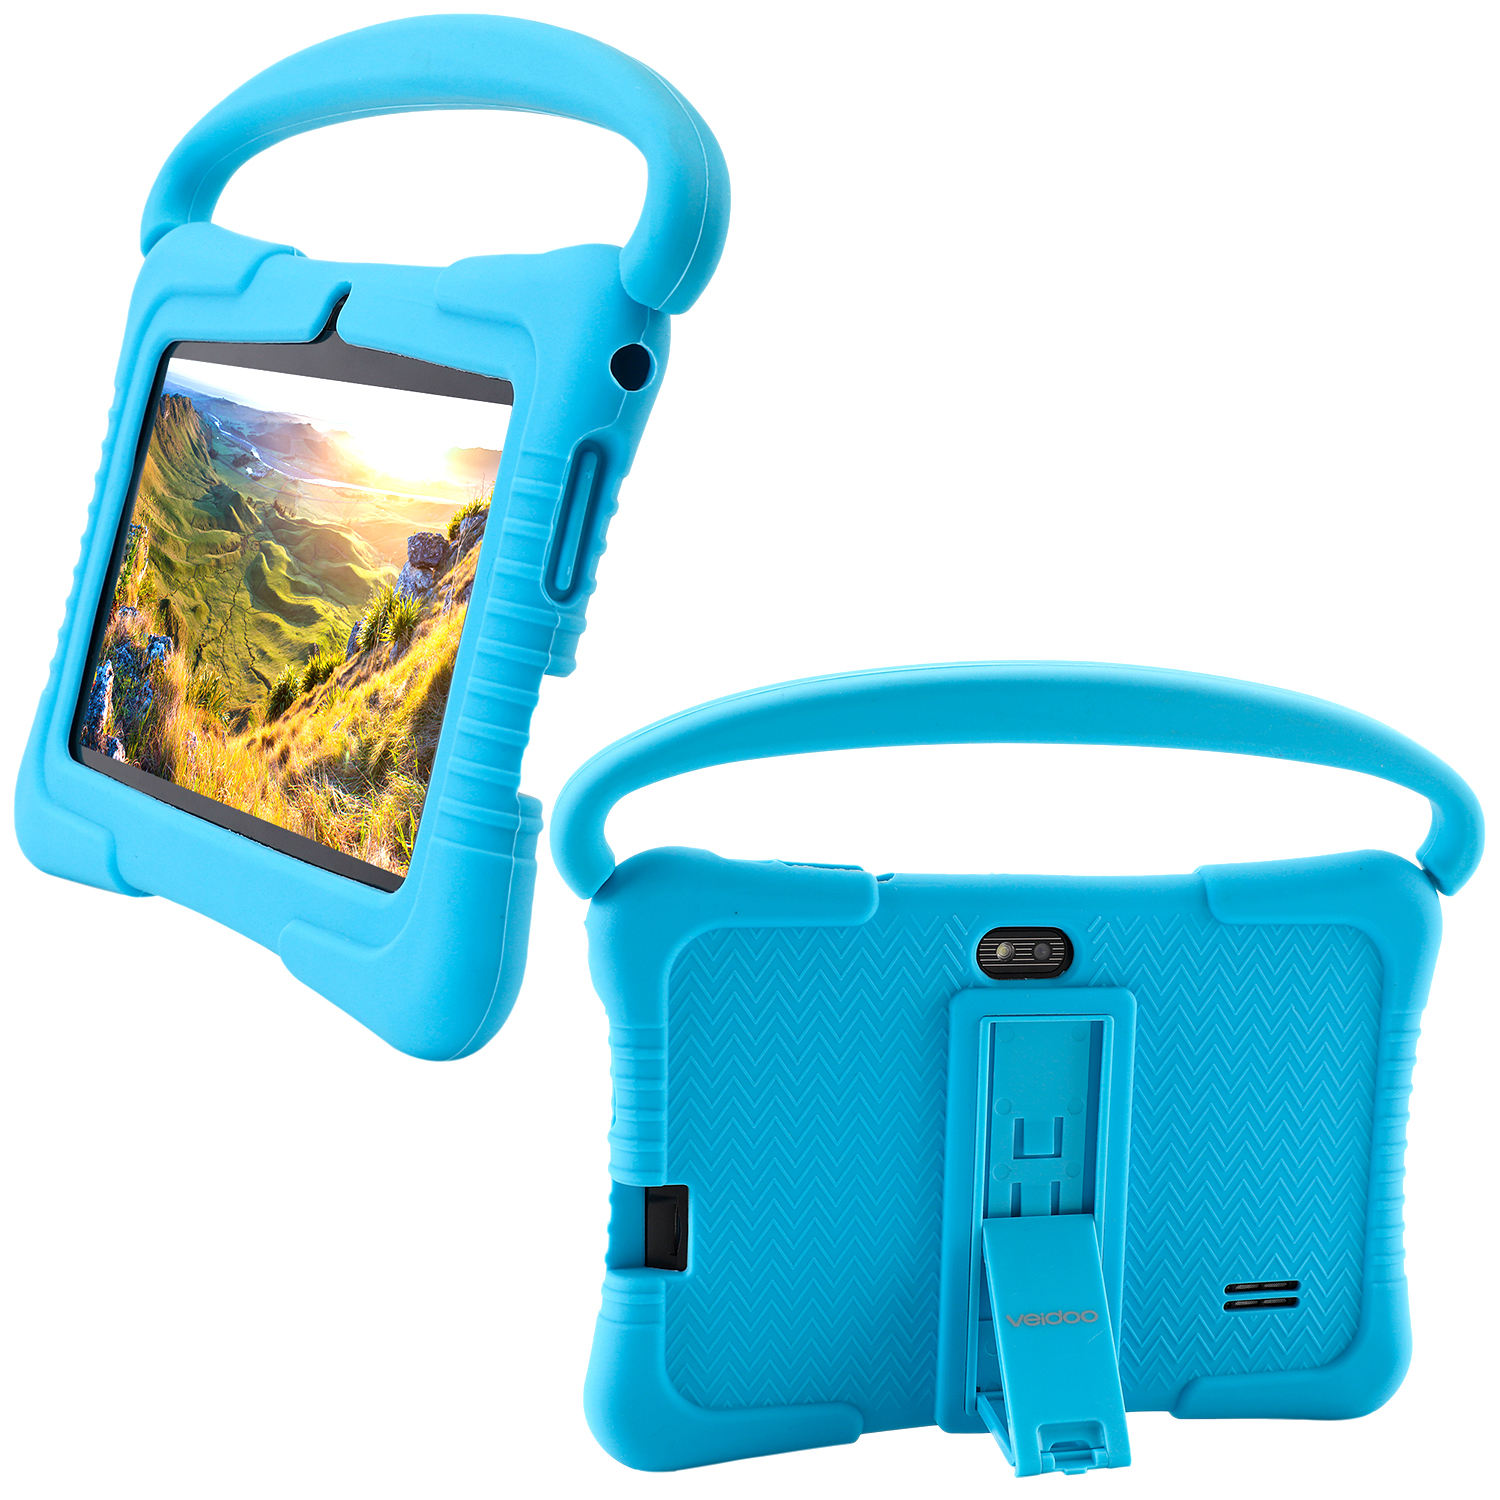 7 inch Tablet PC Case Shockproof Silicone Case With Handle And Stand For Veidoo Kids Tablet PC T8 (8.3x6.3x0.8 inches)